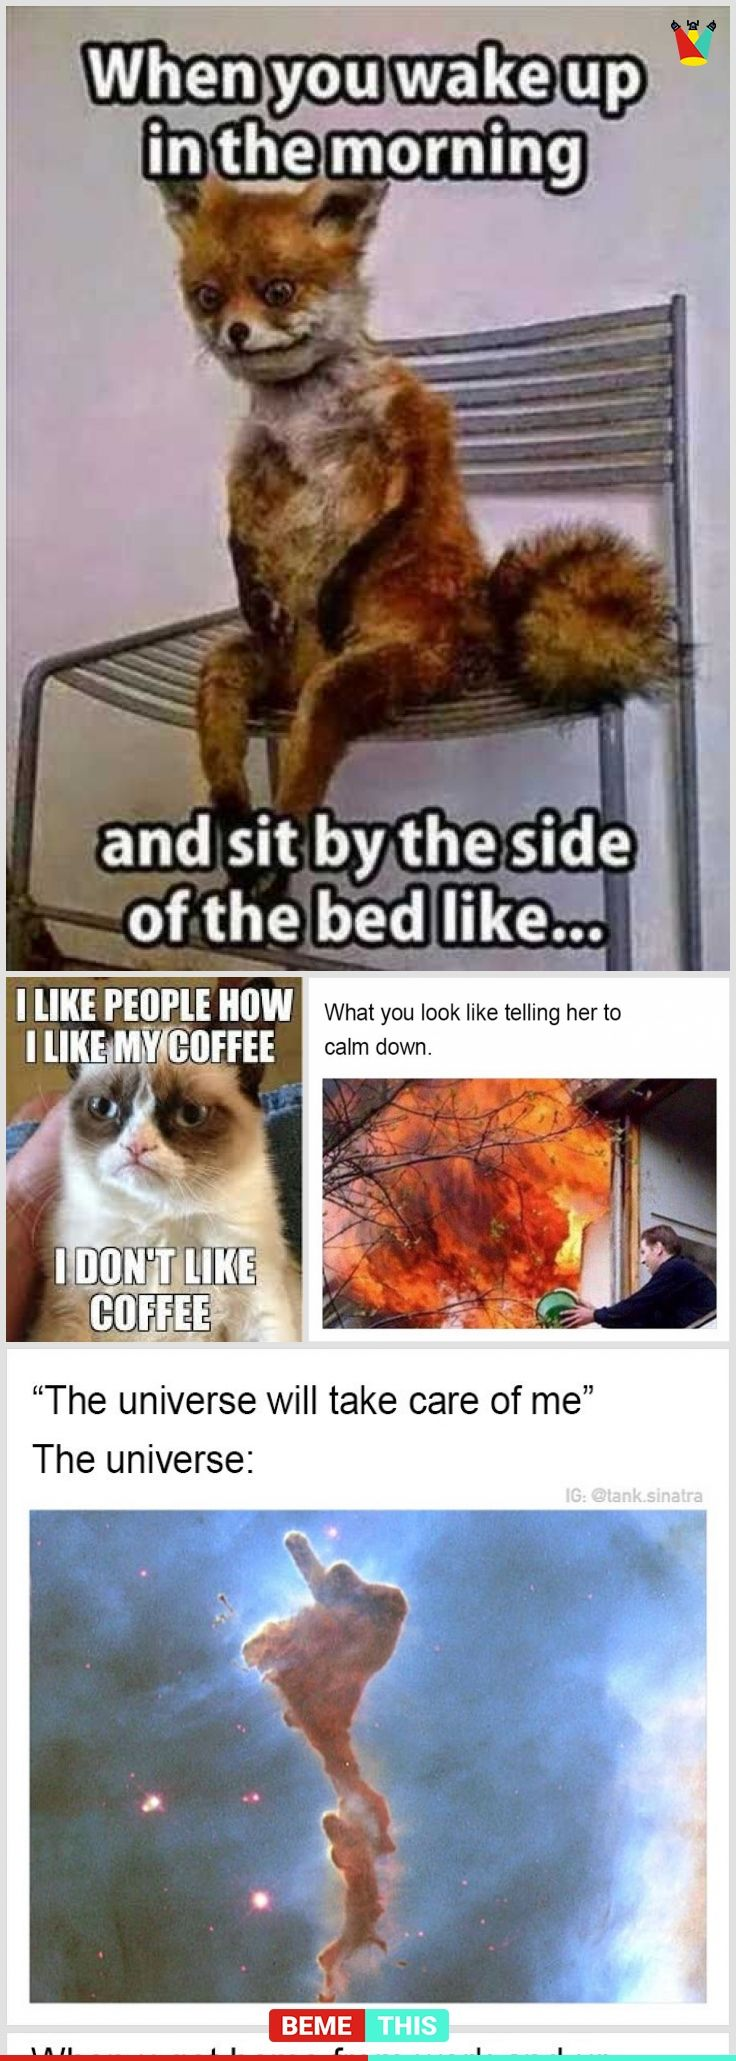 Presenting 20 Hysterical Memes To Brighten Your Day Funnymemes Humour Memes Funny Epic Jokes Memes Funny Memes Brighten Your Day